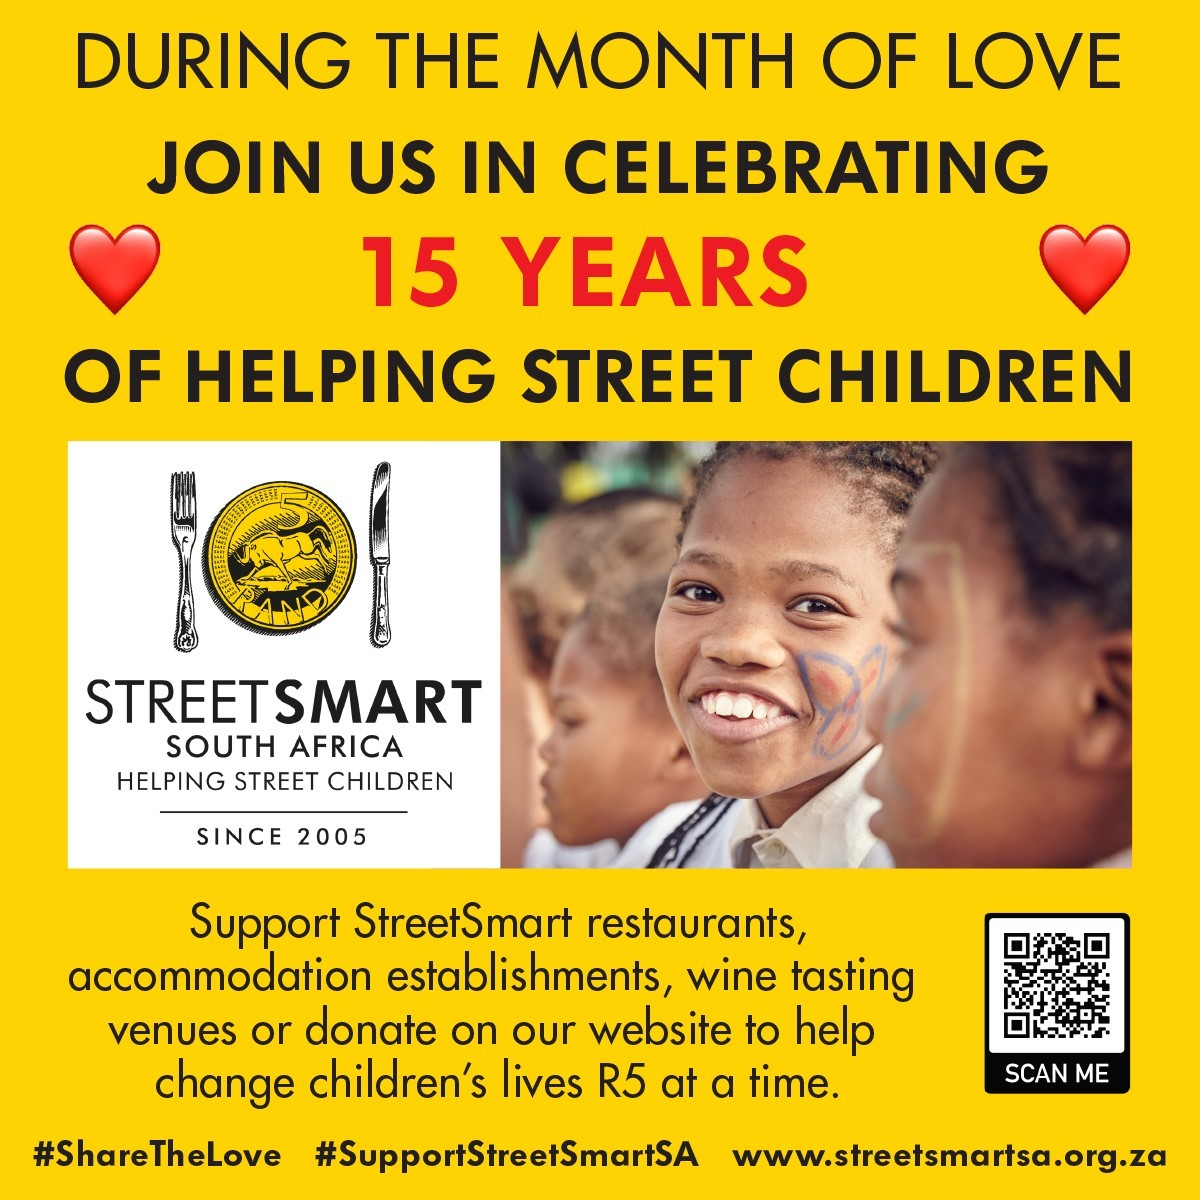 StreetSmart Celebrates 15 Years Of Changing Children's Lives R5 At A Time photo